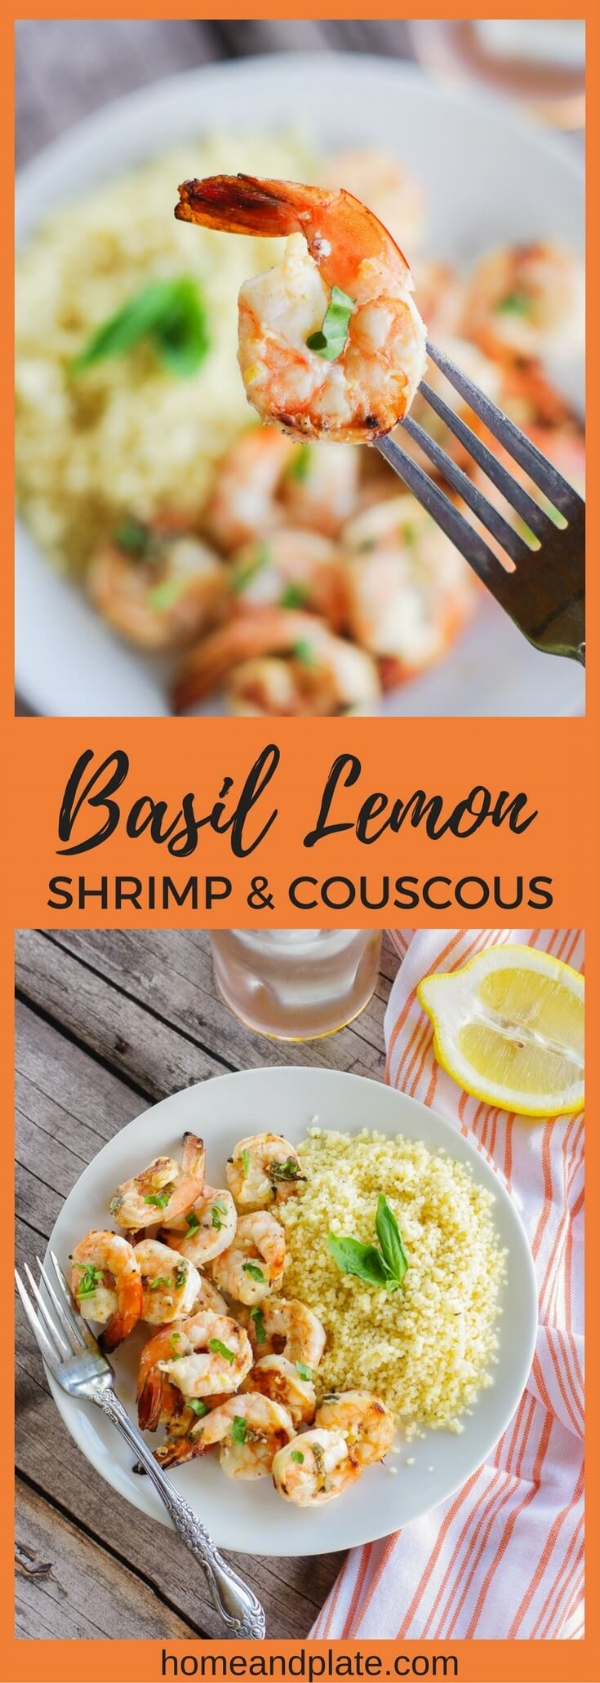 Lemon Basil Grilled Shrimp & Couscous   www.homeandplate.com   Marinated grilled shrimp flavored with lemon zest and basil served on a bed of Parmesan couscous is an easy spring and summer dinner that can be on your table in under an hour.